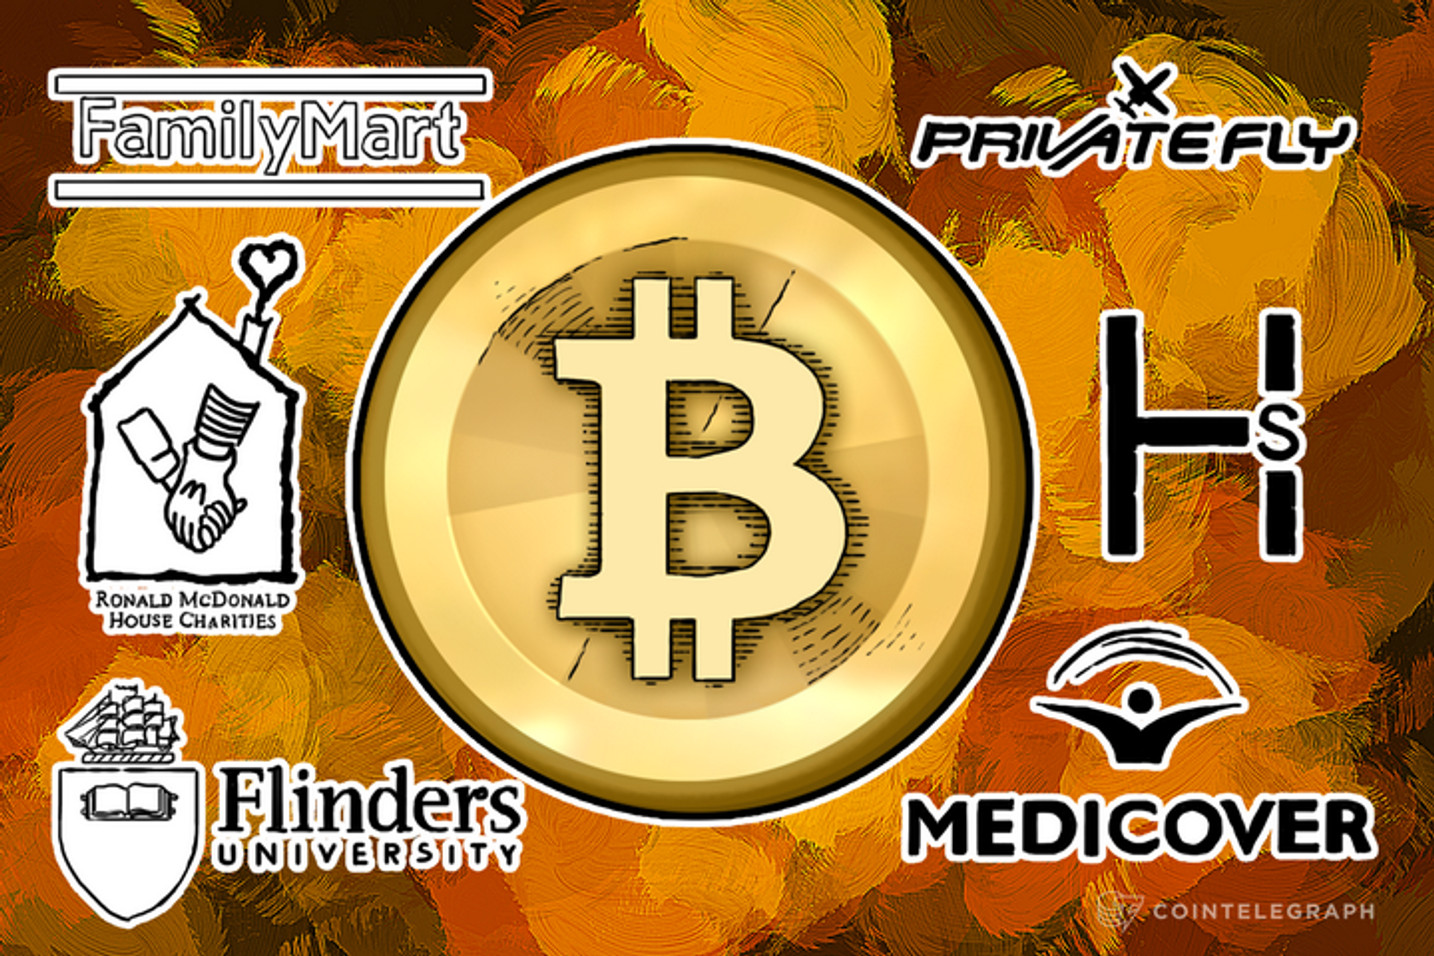 New Bitcoin Merchants and Businesses: The Grid, PrivateFly, Flanders University, Ronald McDonald House and More